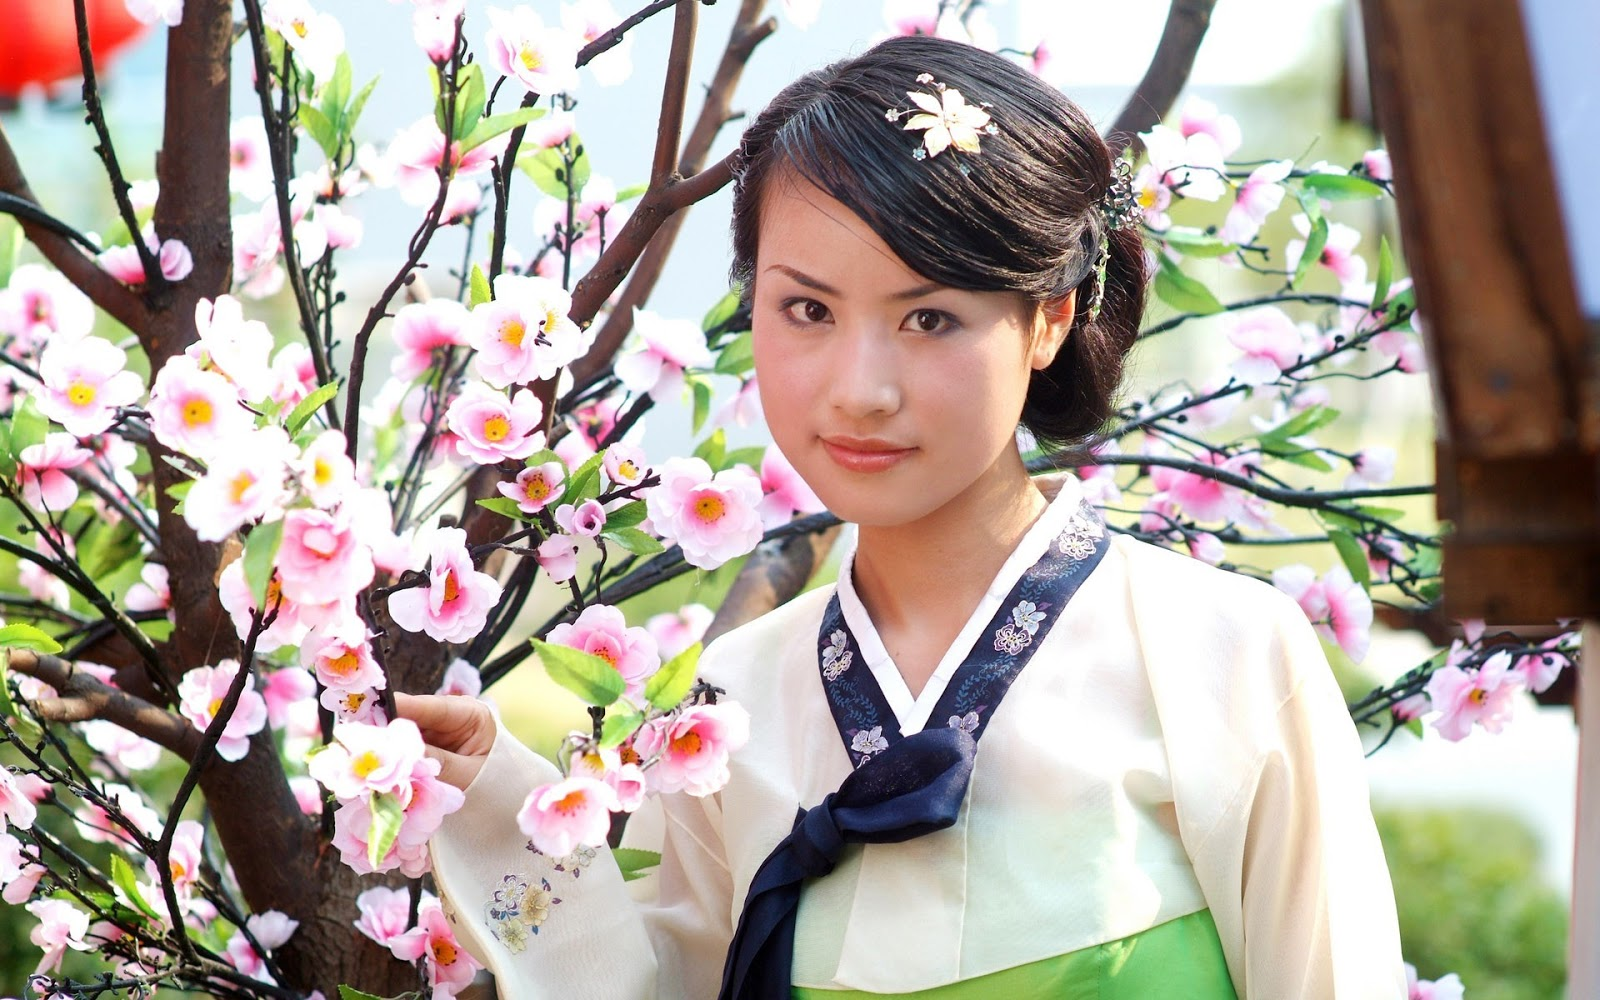 Beautiful japanese model full hd desktop wallpapers 1080p - Asian schoolgirl wallpaper ...